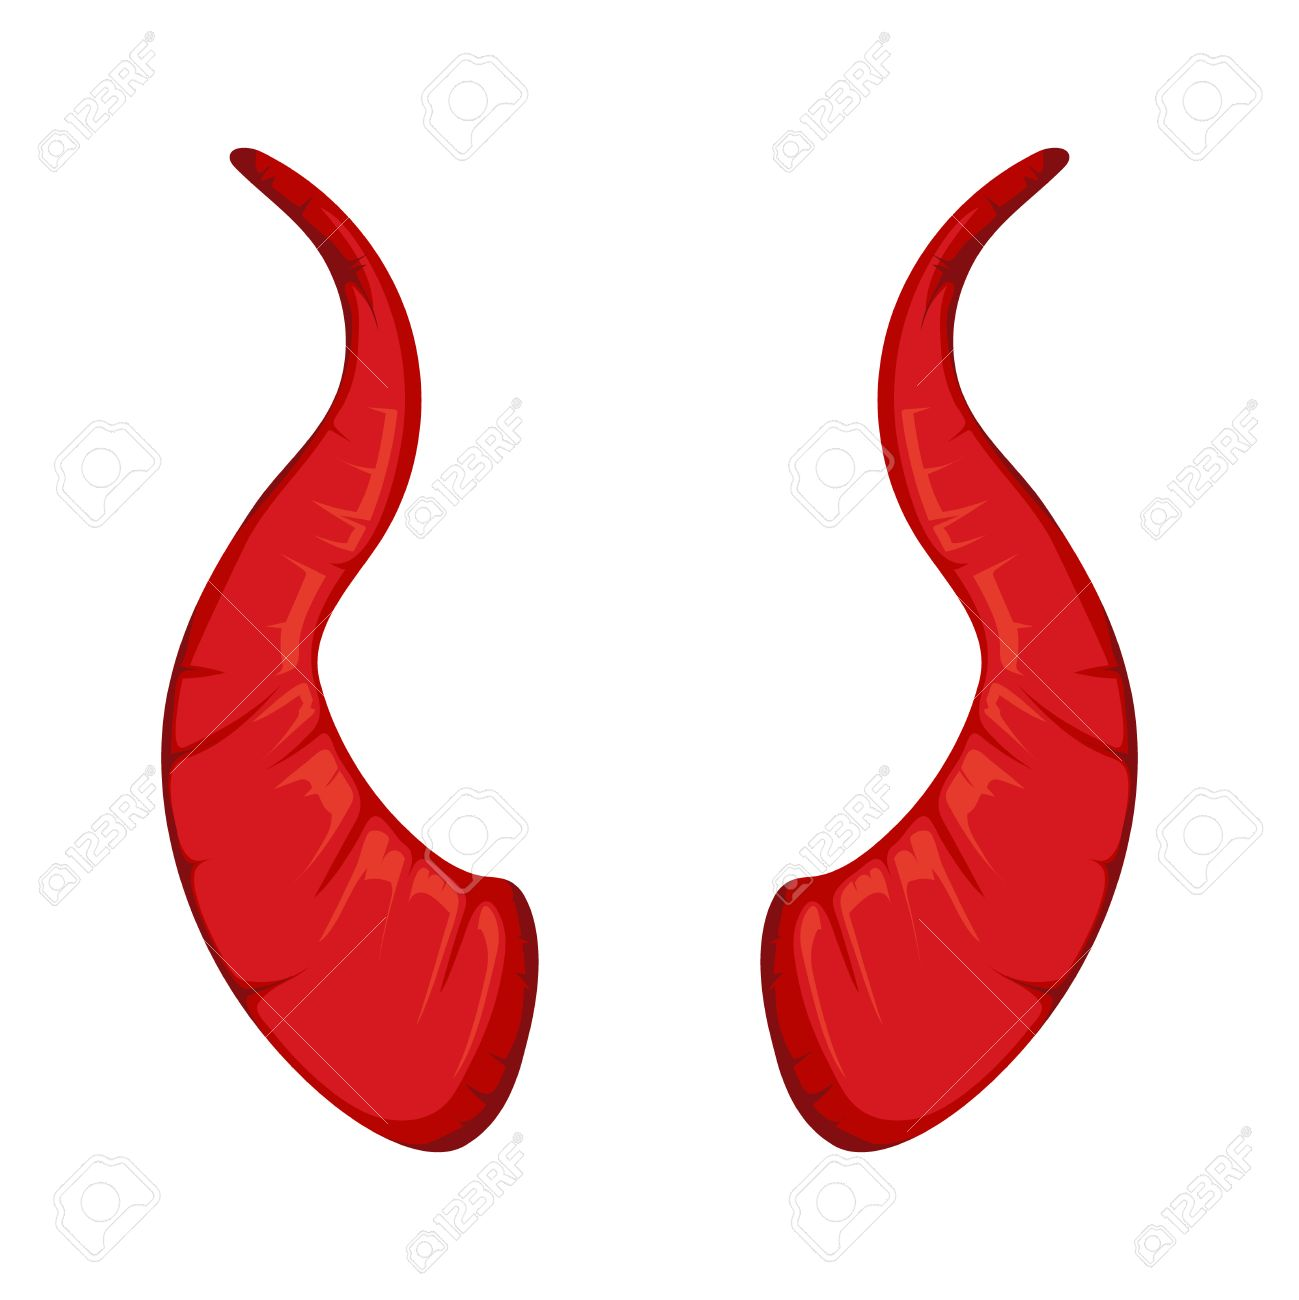 Vector Illustration Of Red Devil Horns Isolate On White Background Picture For Halloween Party Stock